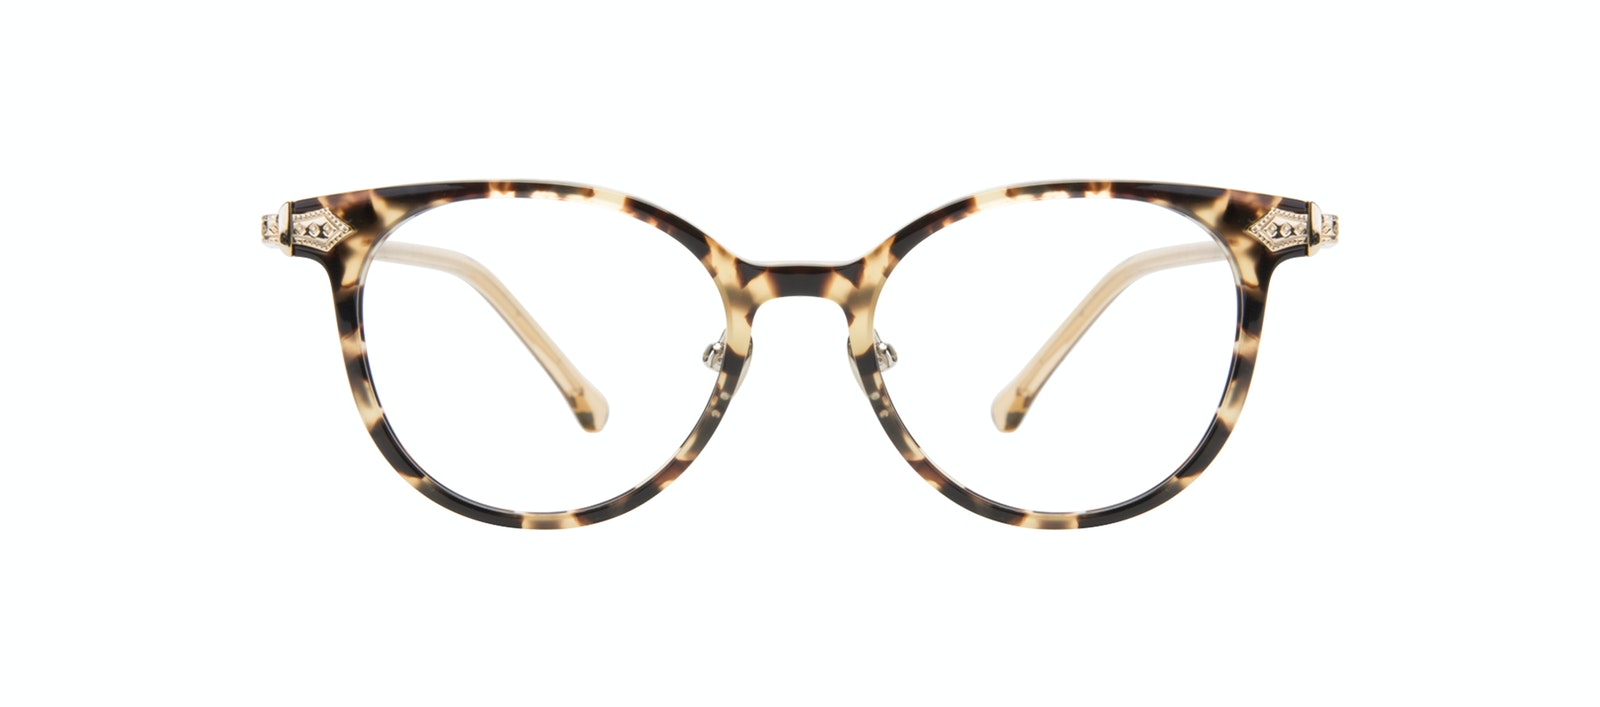 Affordable Fashion Glasses Round Eyeglasses Women Gem Golden Chip Front